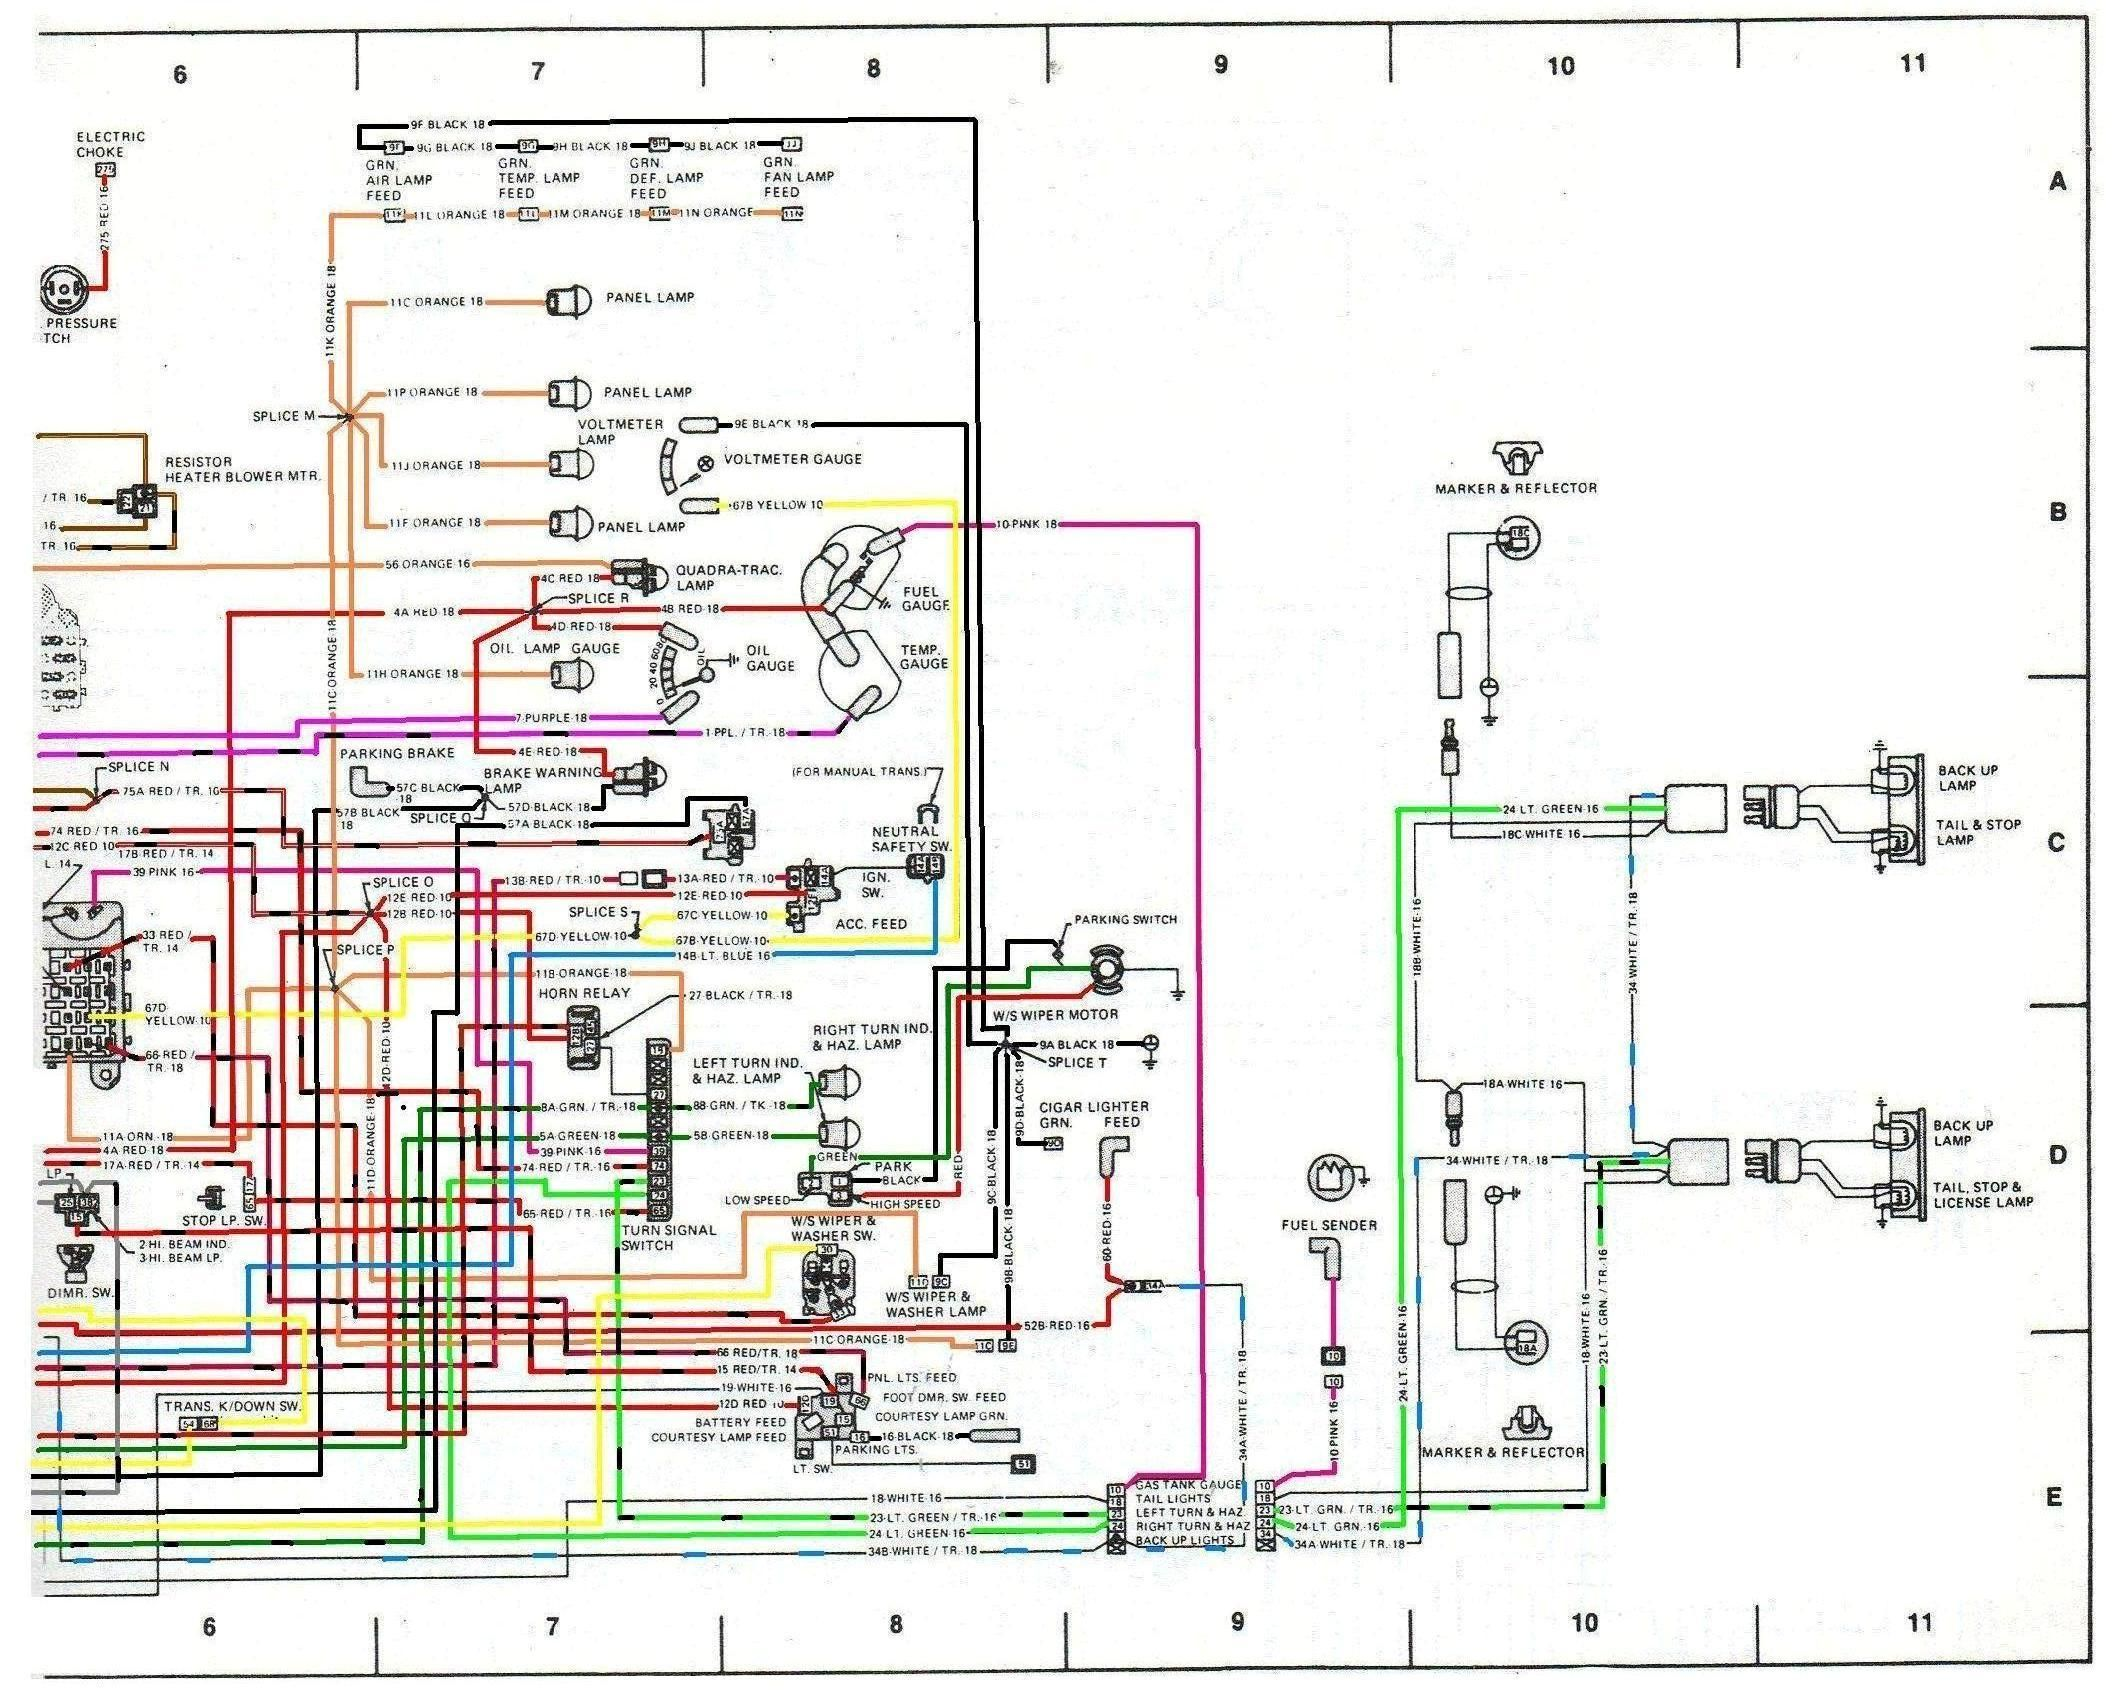 Cj Wiring Diagram - Wiring Diagram | Cj Wiring Diagram Note Gif |  | Wiring Diagram